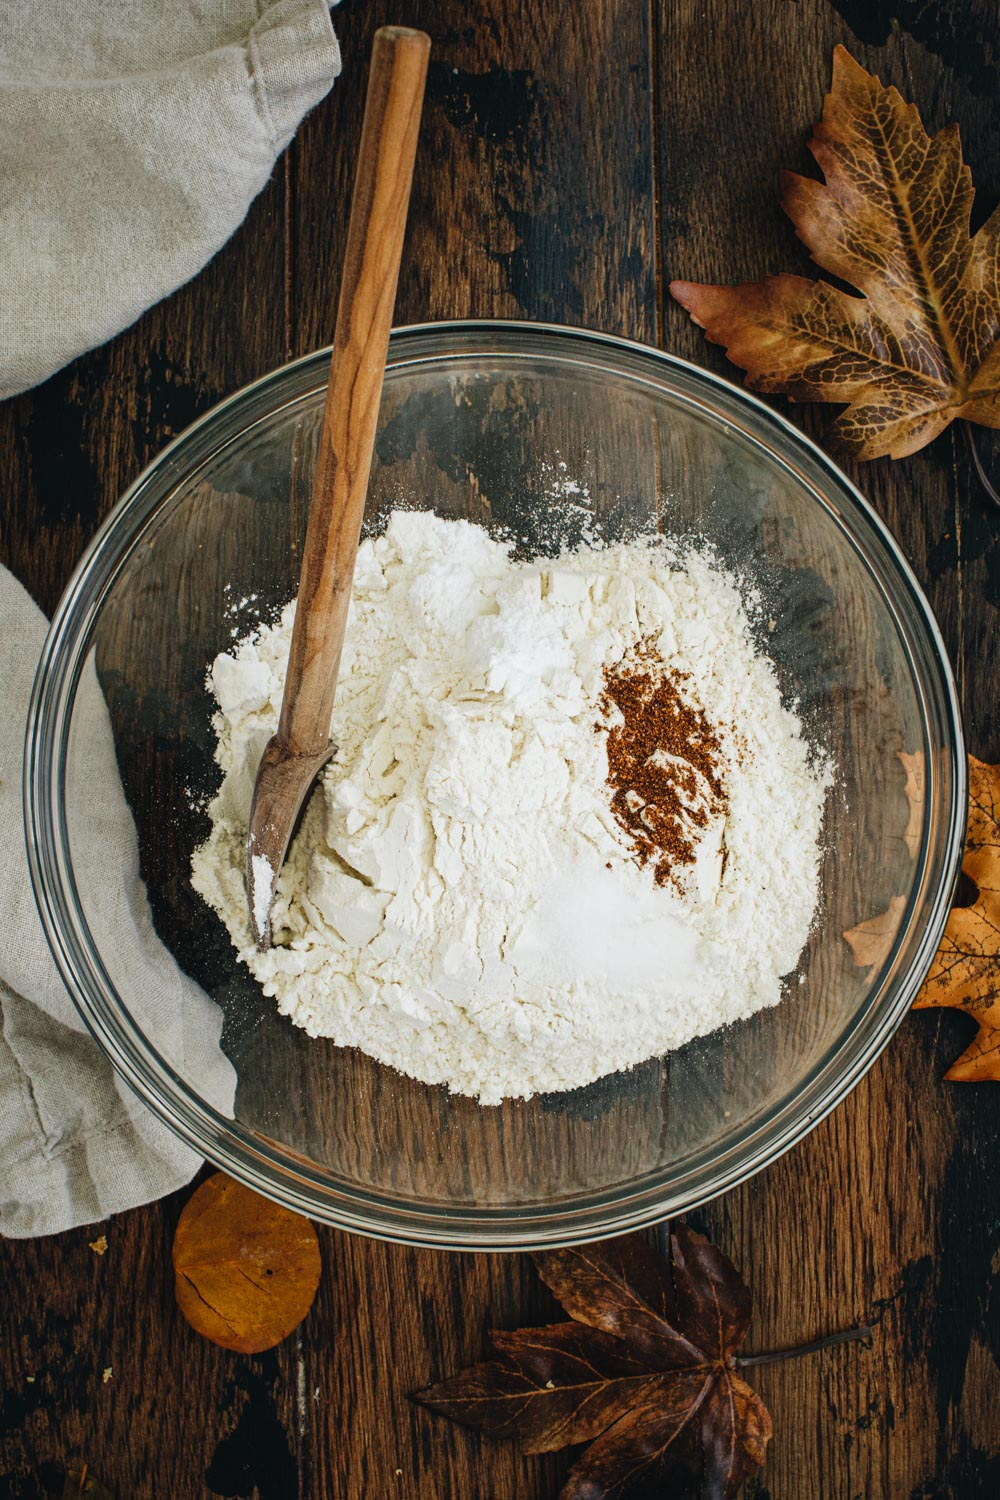 Dry ingredients for chocolate and pumpkin brownies in a mixing bowl with a wooden spoon.